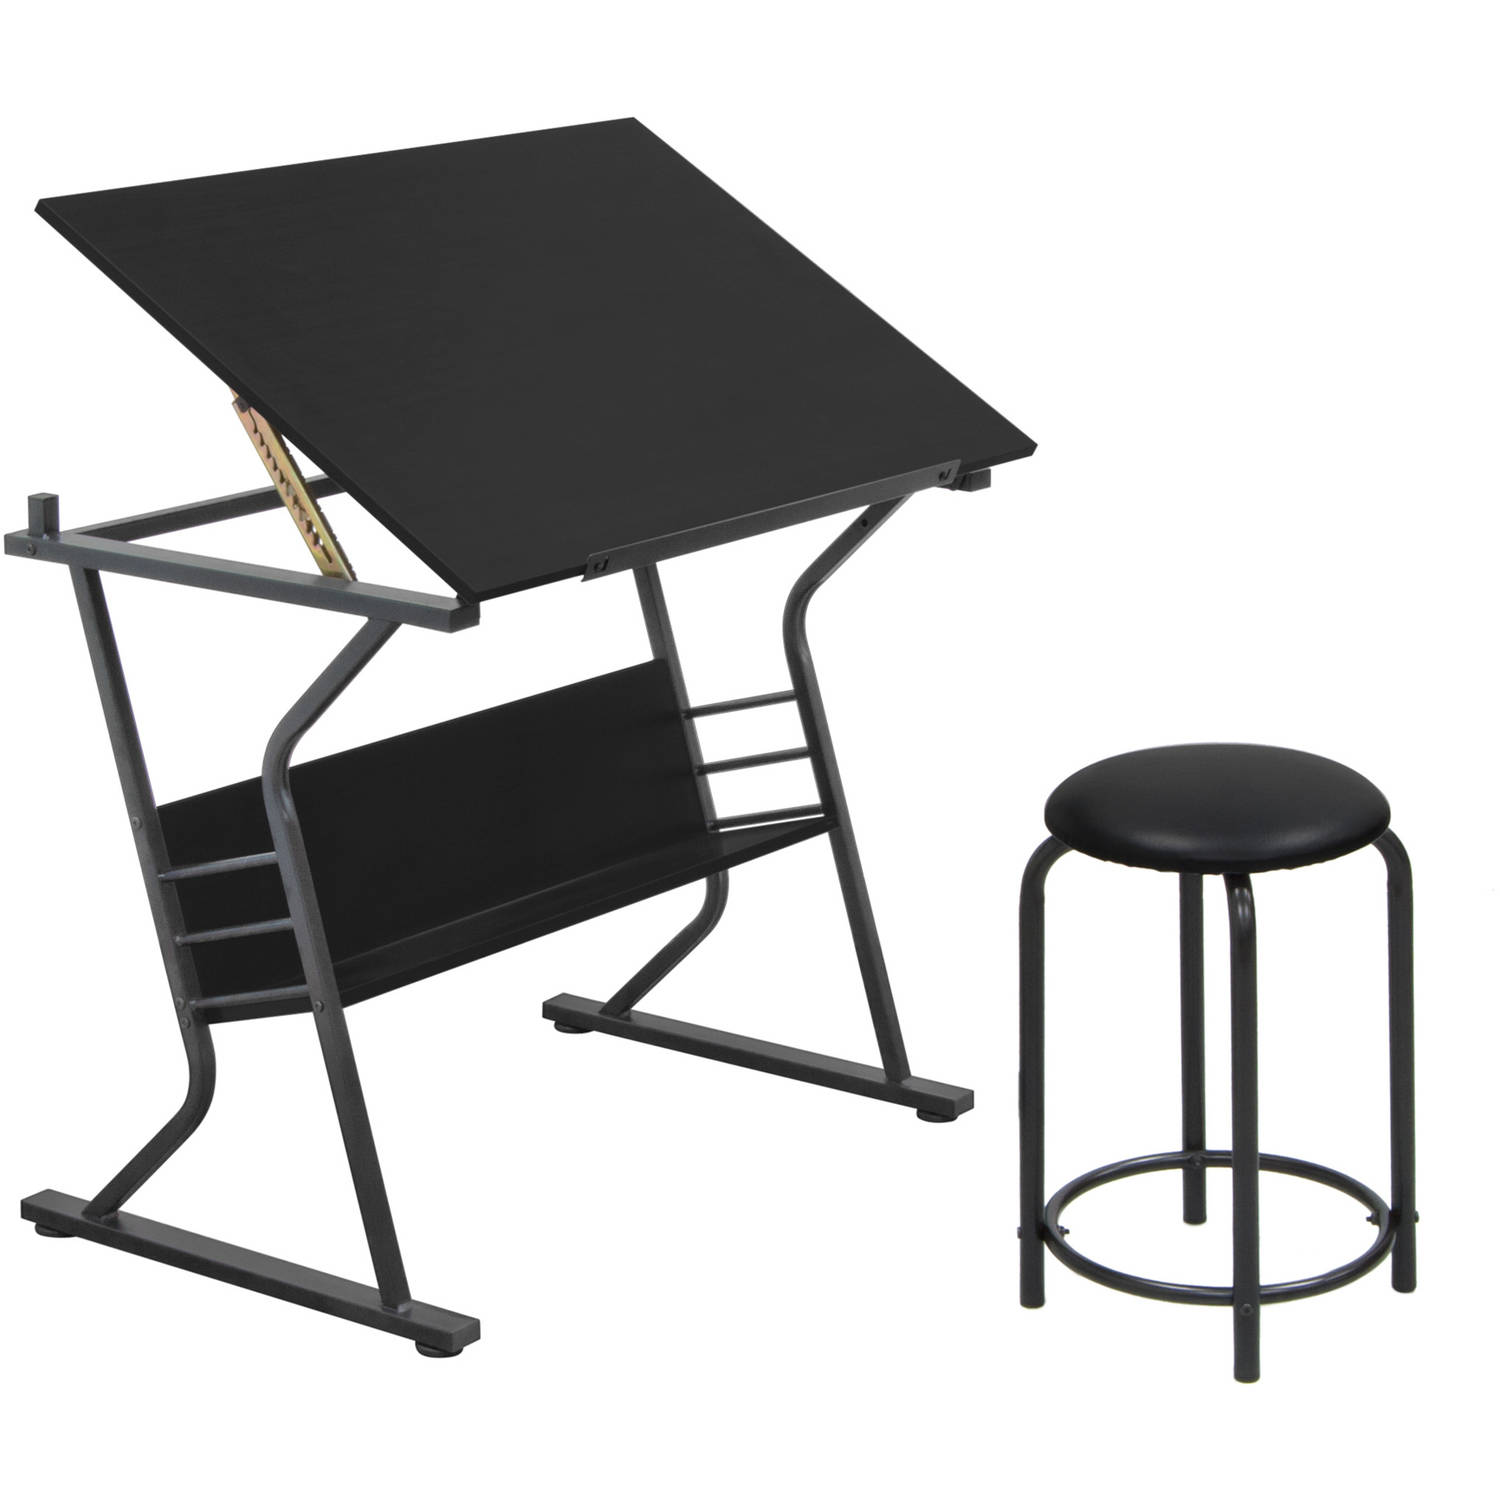 studio designs eclipse table with stool black - Drafting Tables